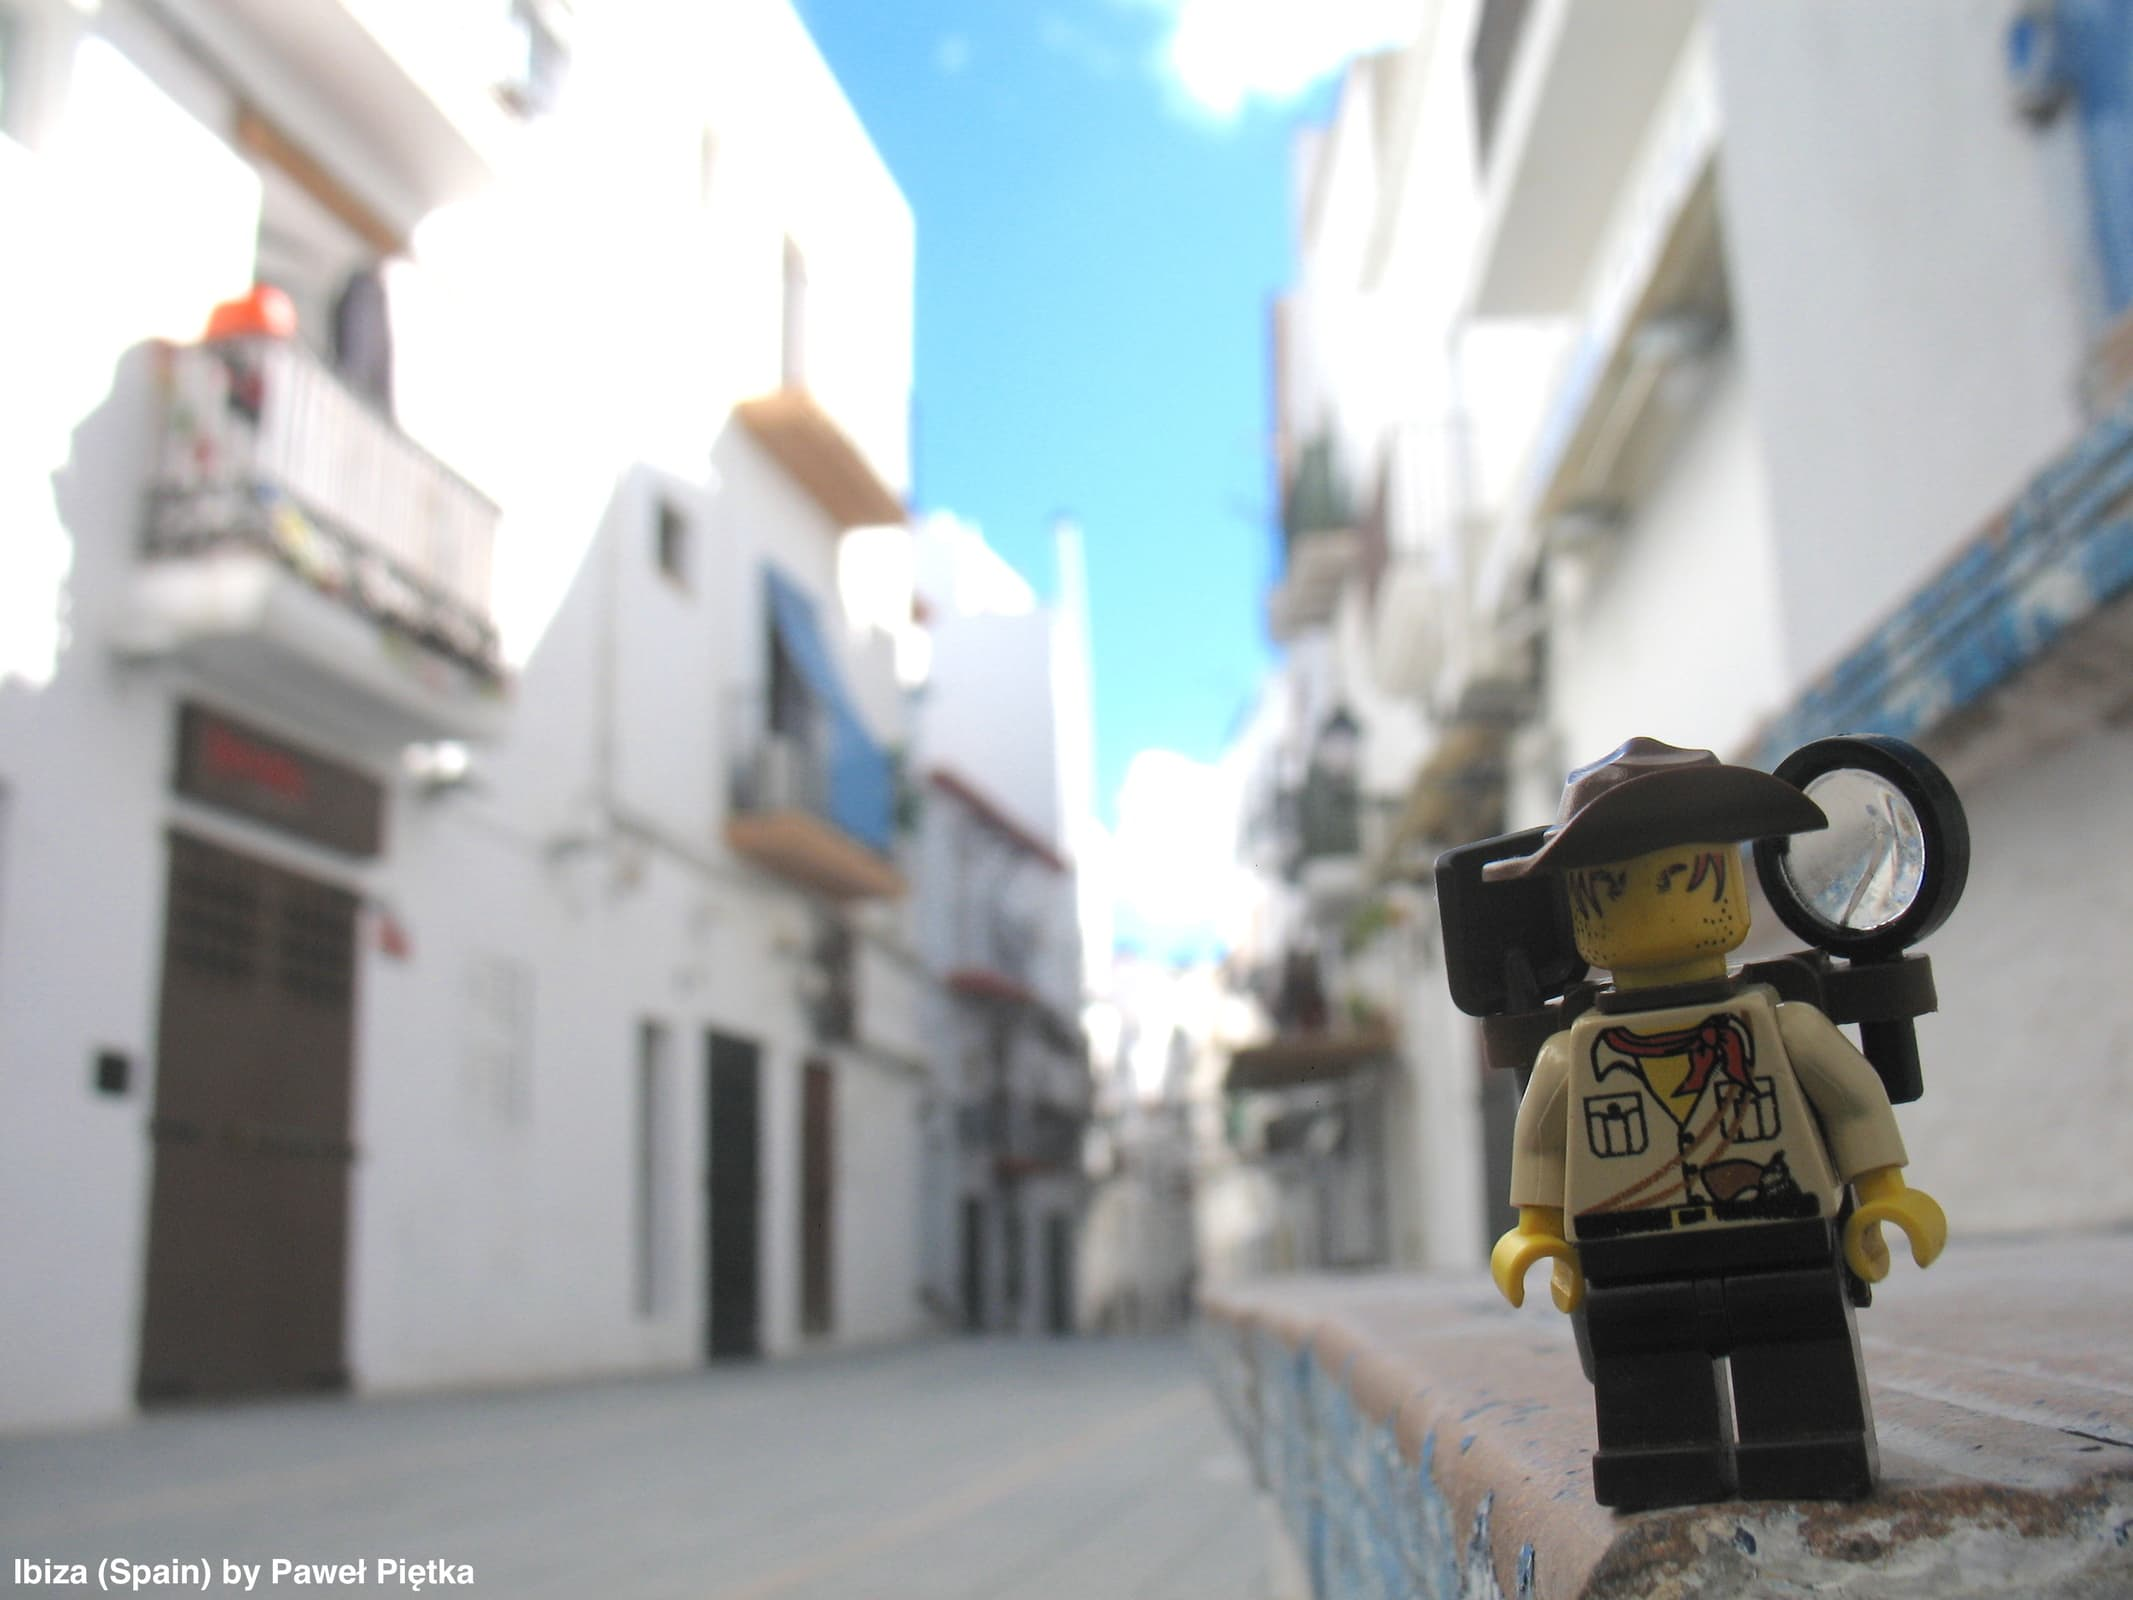 Ibiza (Spain) - Old city of Ibiza Town 2